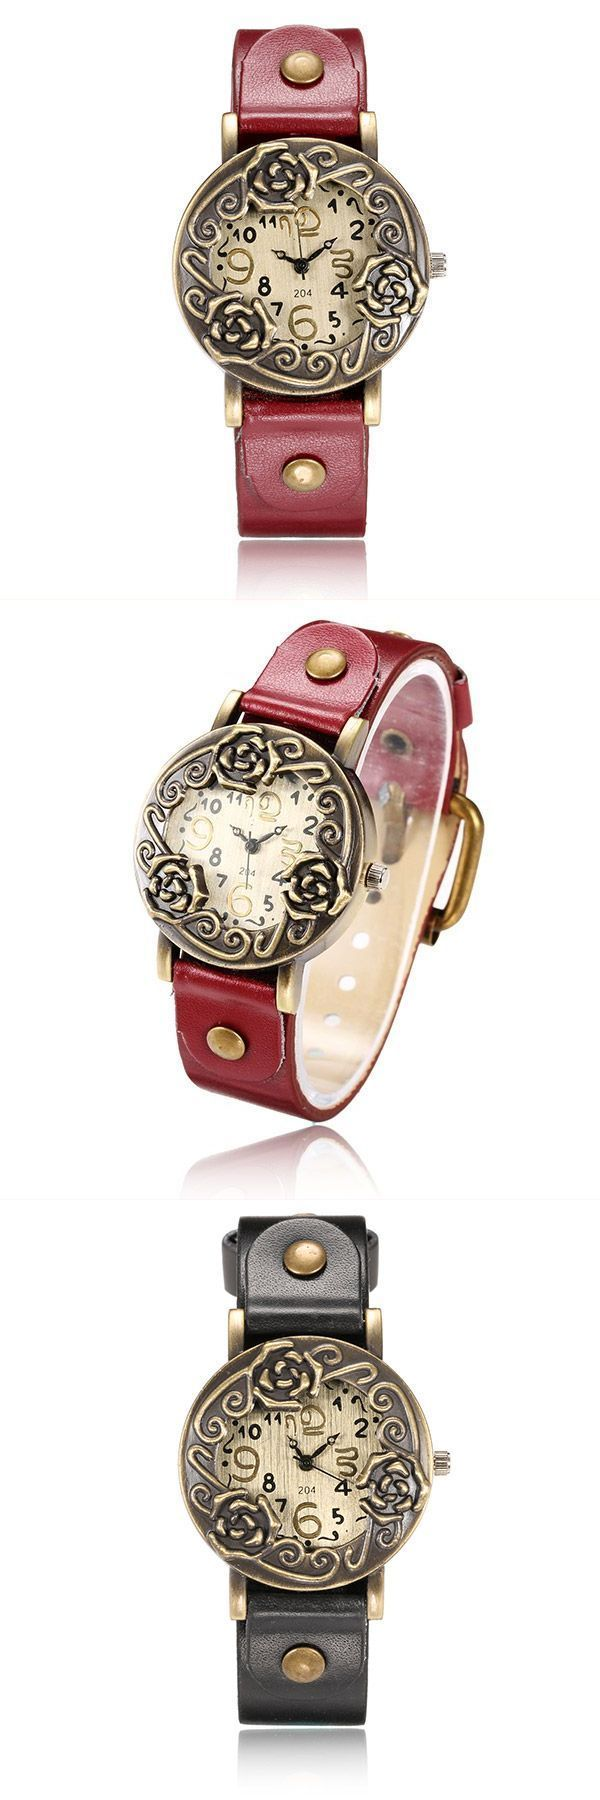 Yazole 204 vintage pu leather band women analog wrist watch retro style jewelry #retro #style #office #chair #retro #style #vector #retro #style #zippo #style #retro #année #70